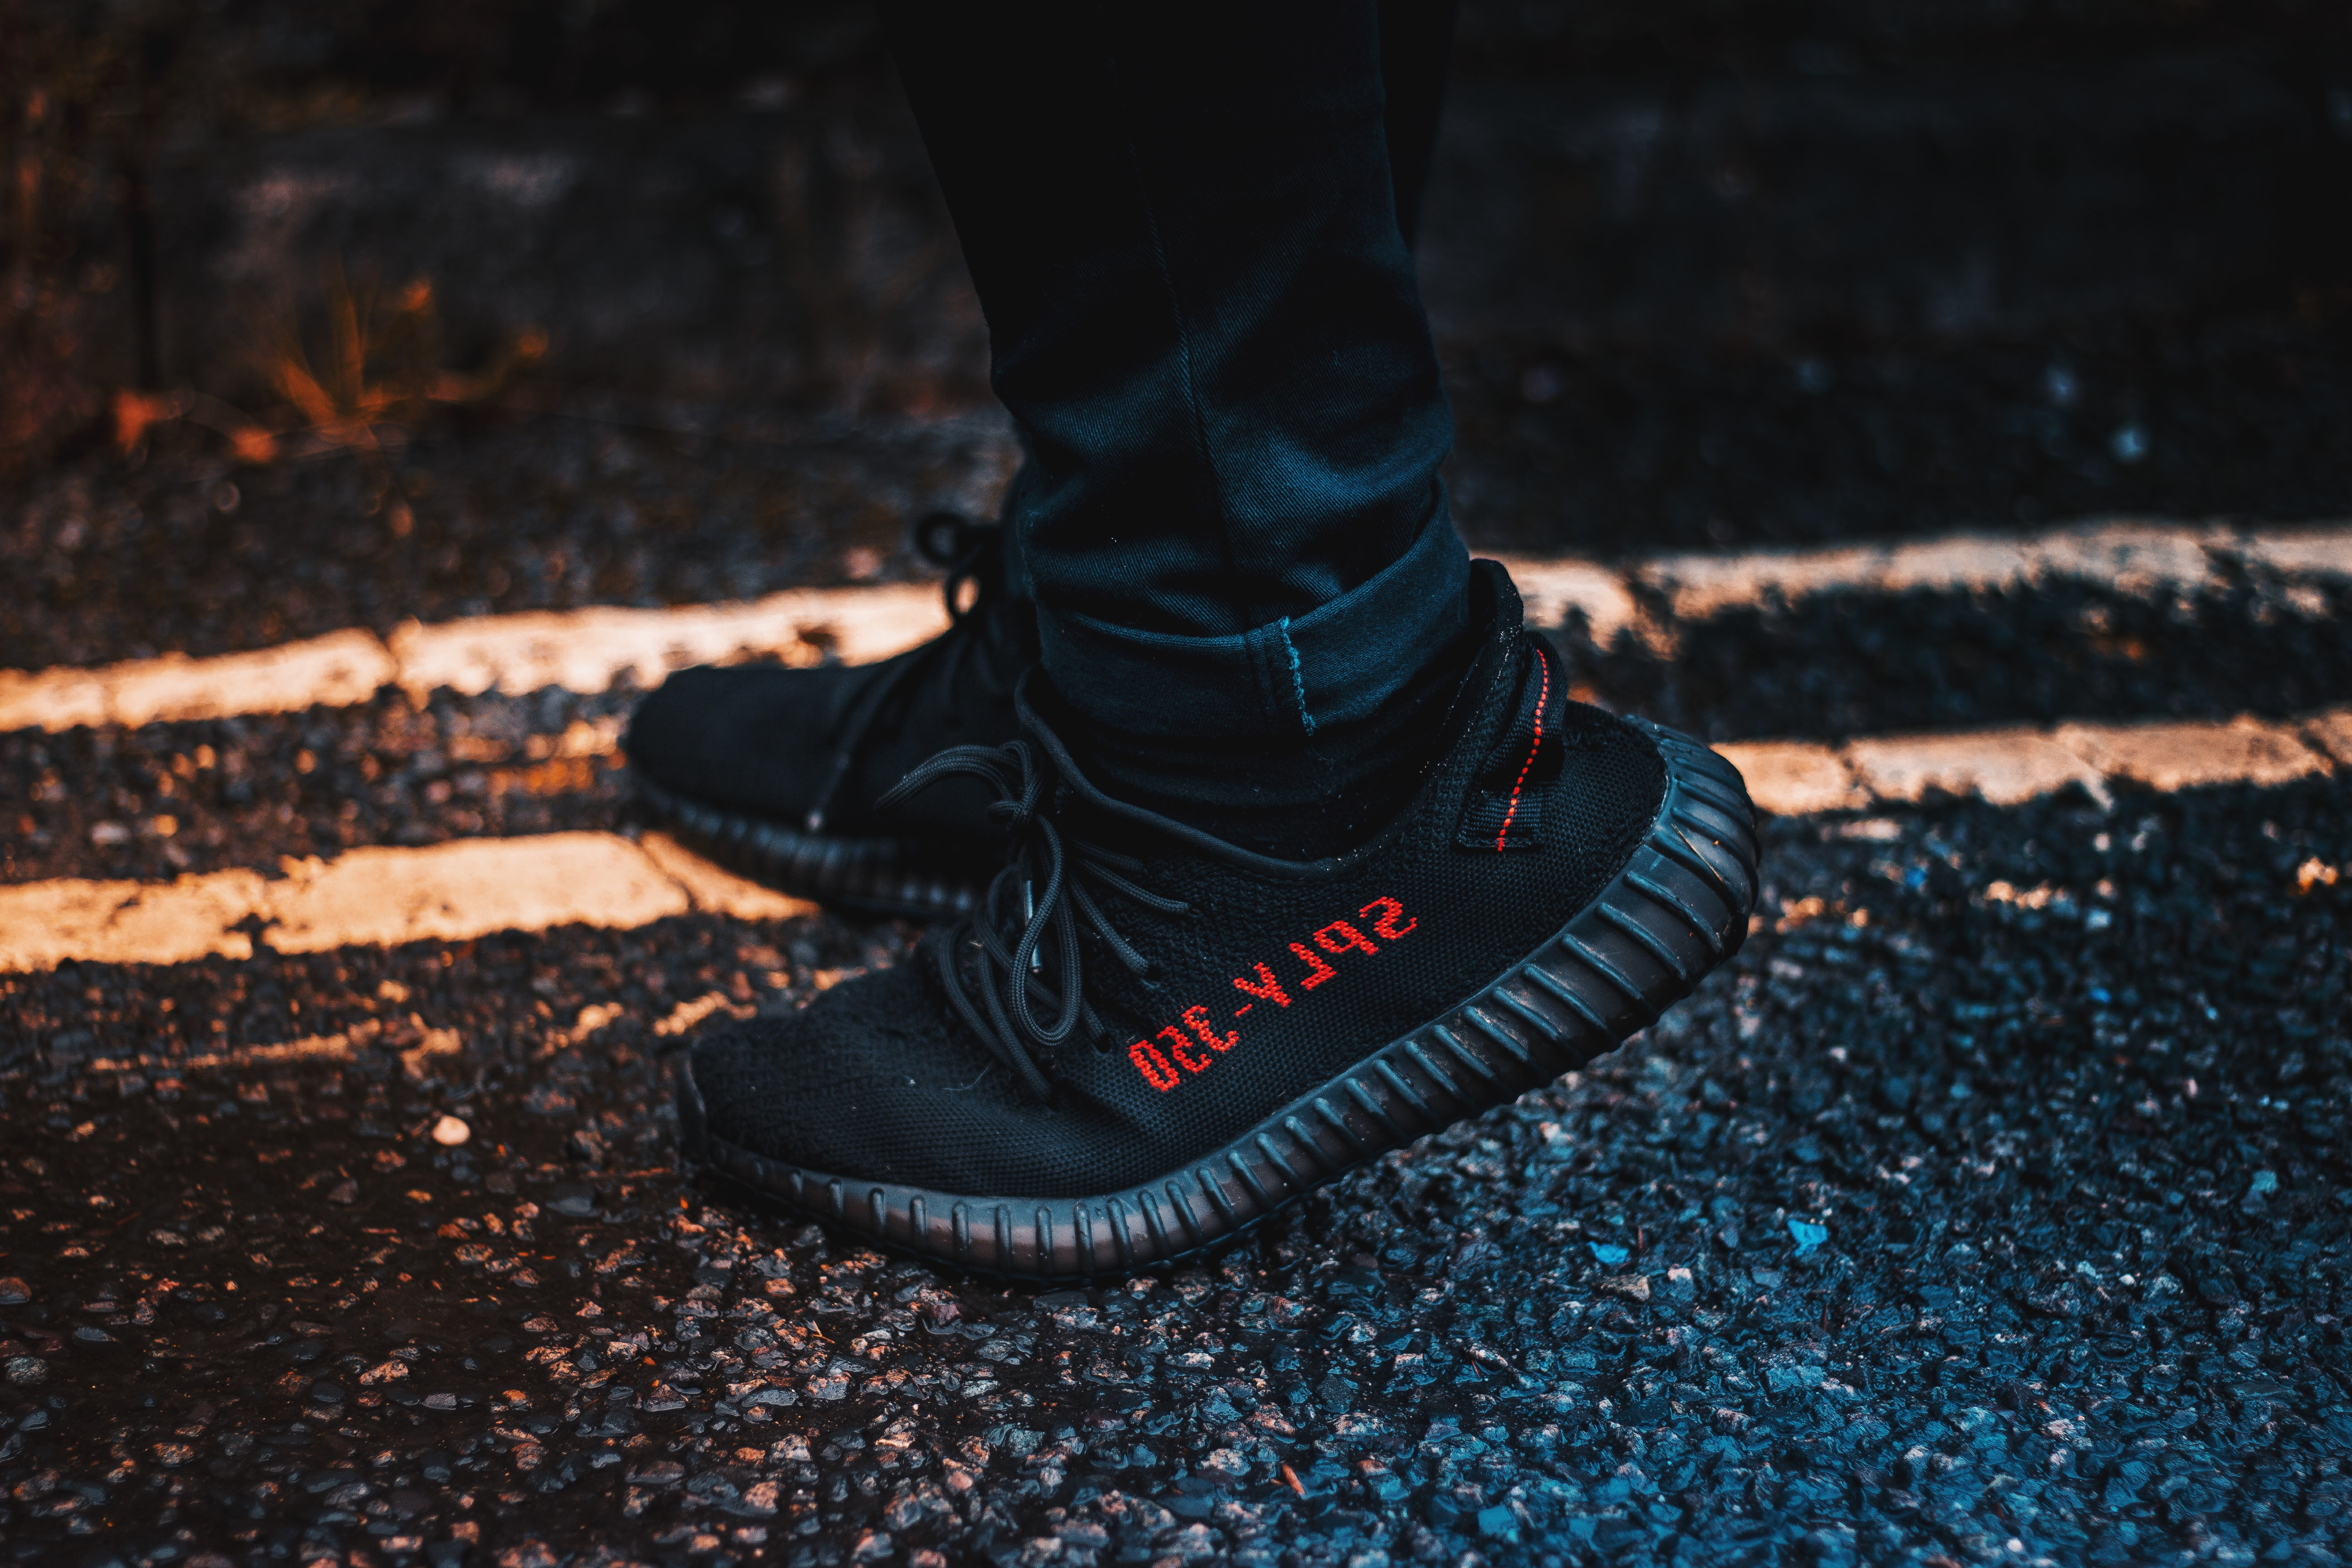 person wearing black adidas Yeezy Boost 350 V2 shoes